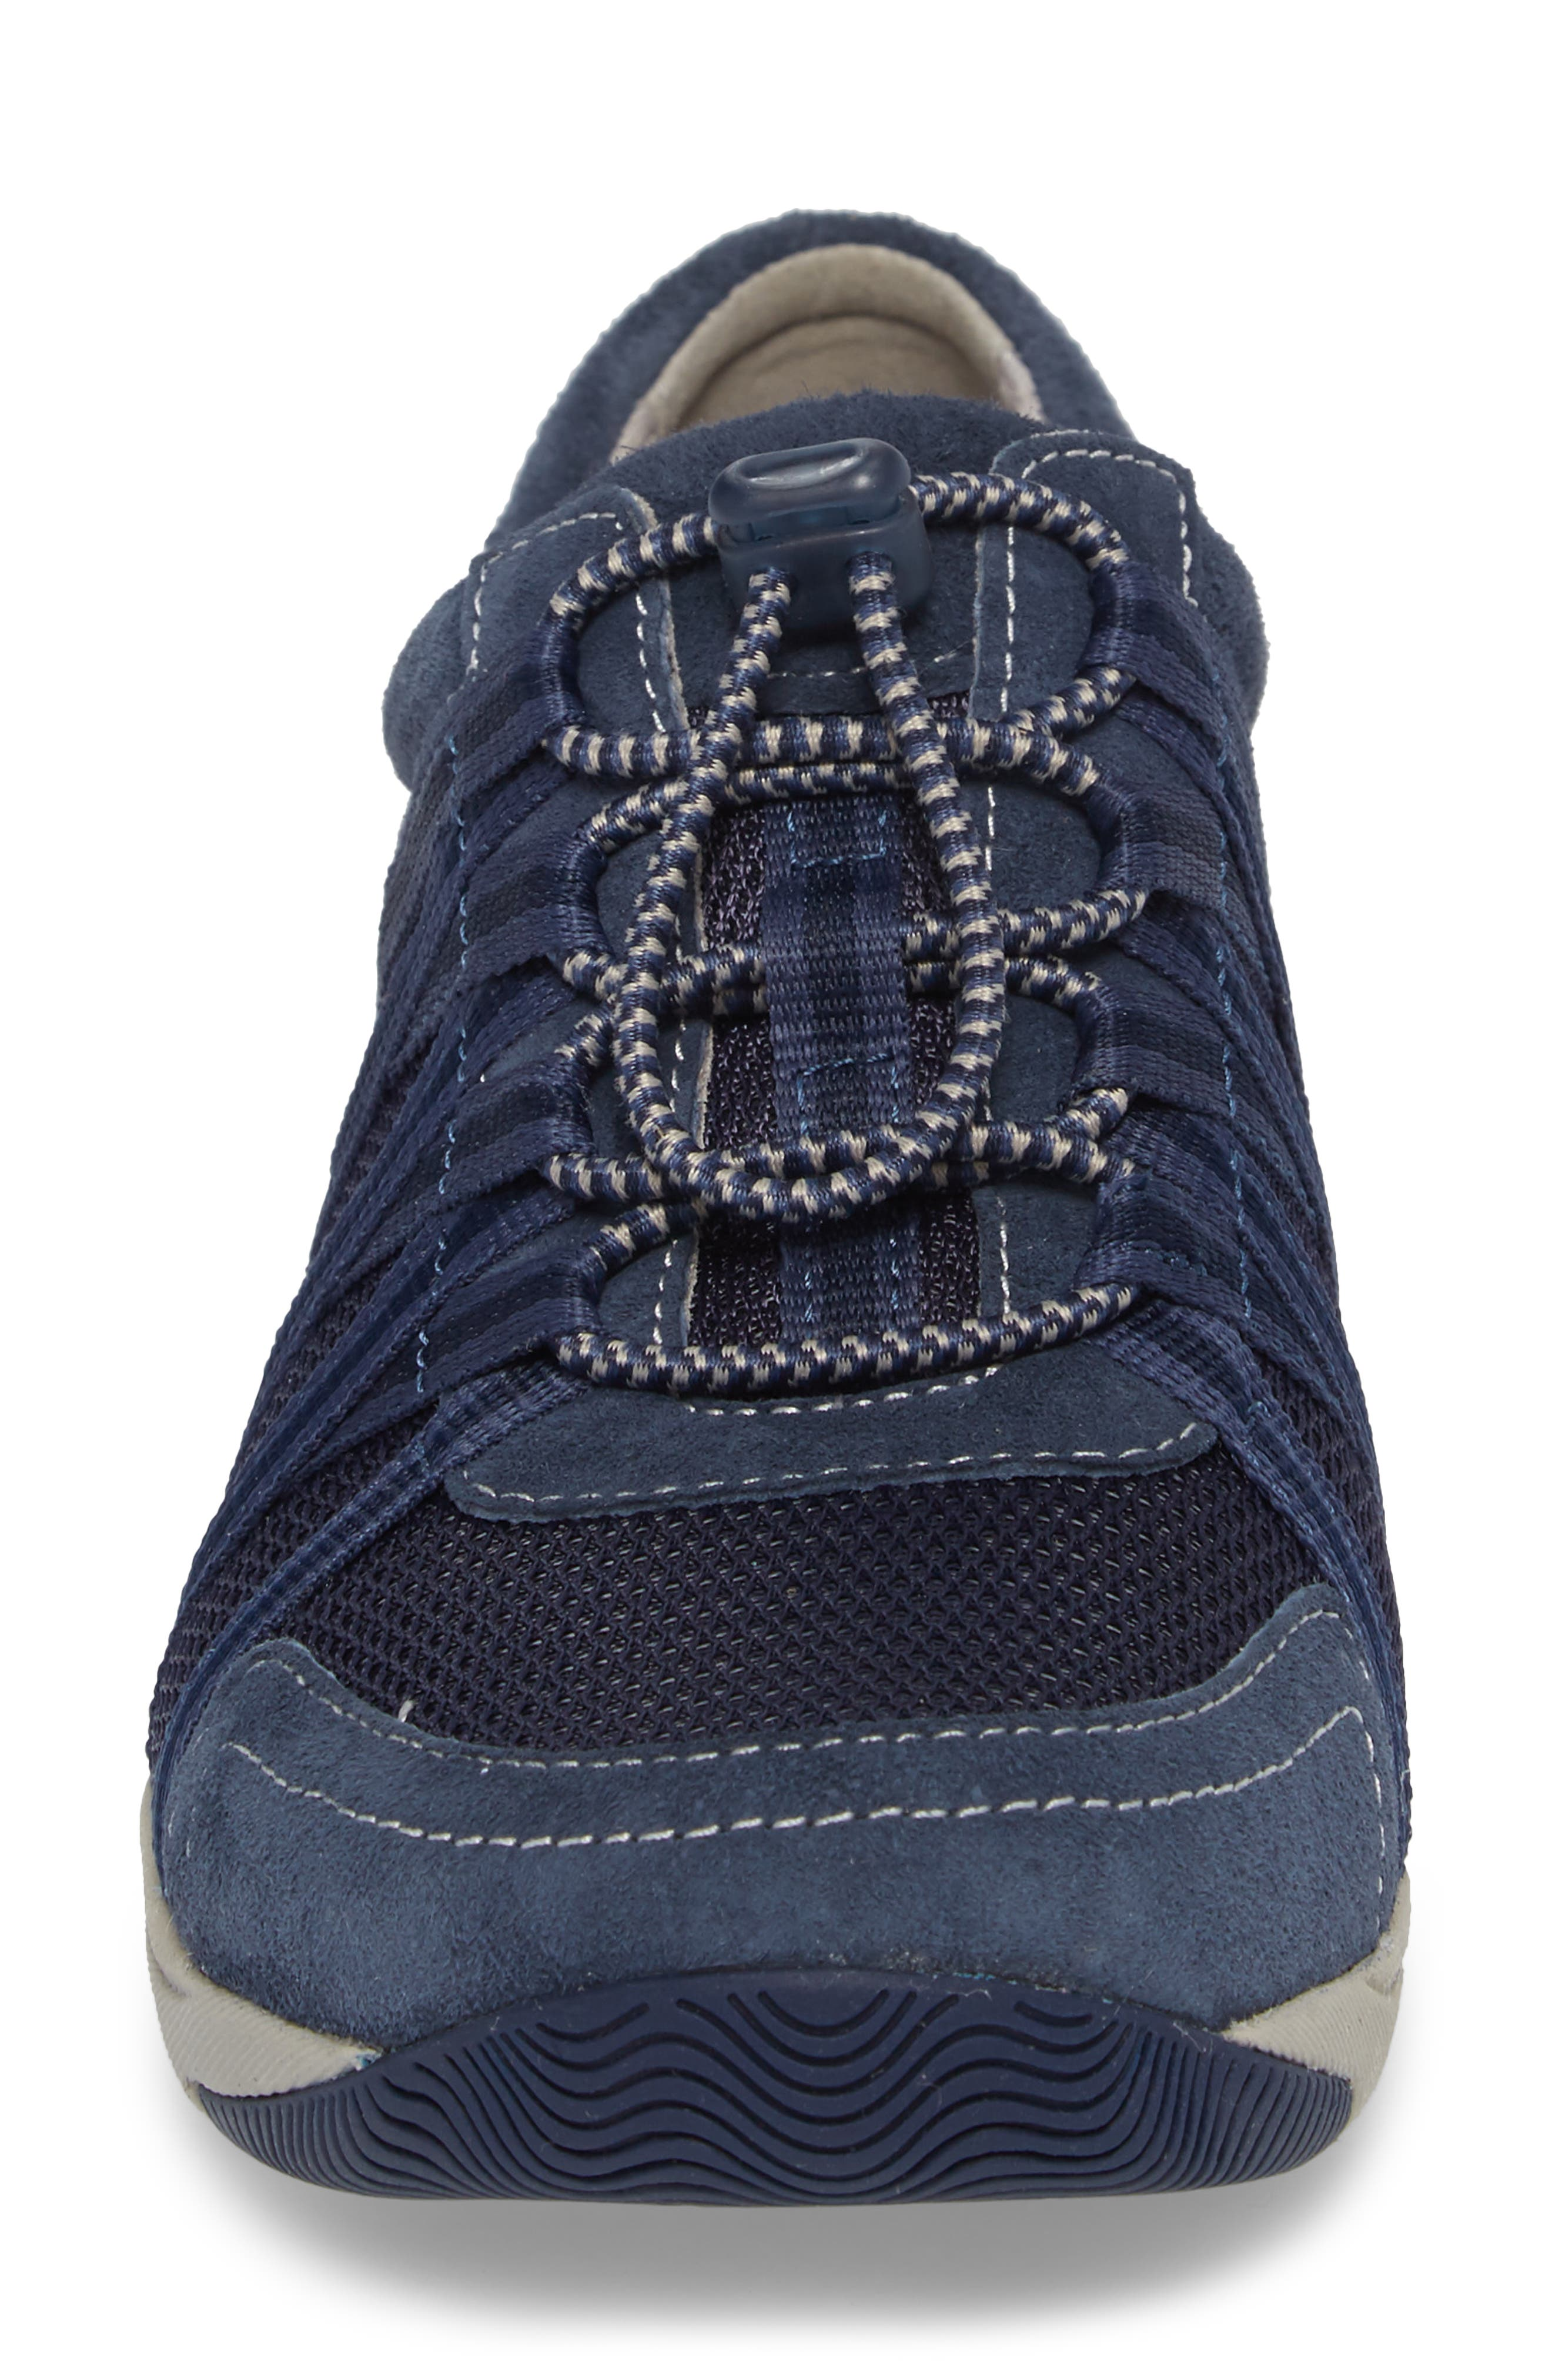 Halifax Collection Honor Sneaker,                             Alternate thumbnail 37, color,